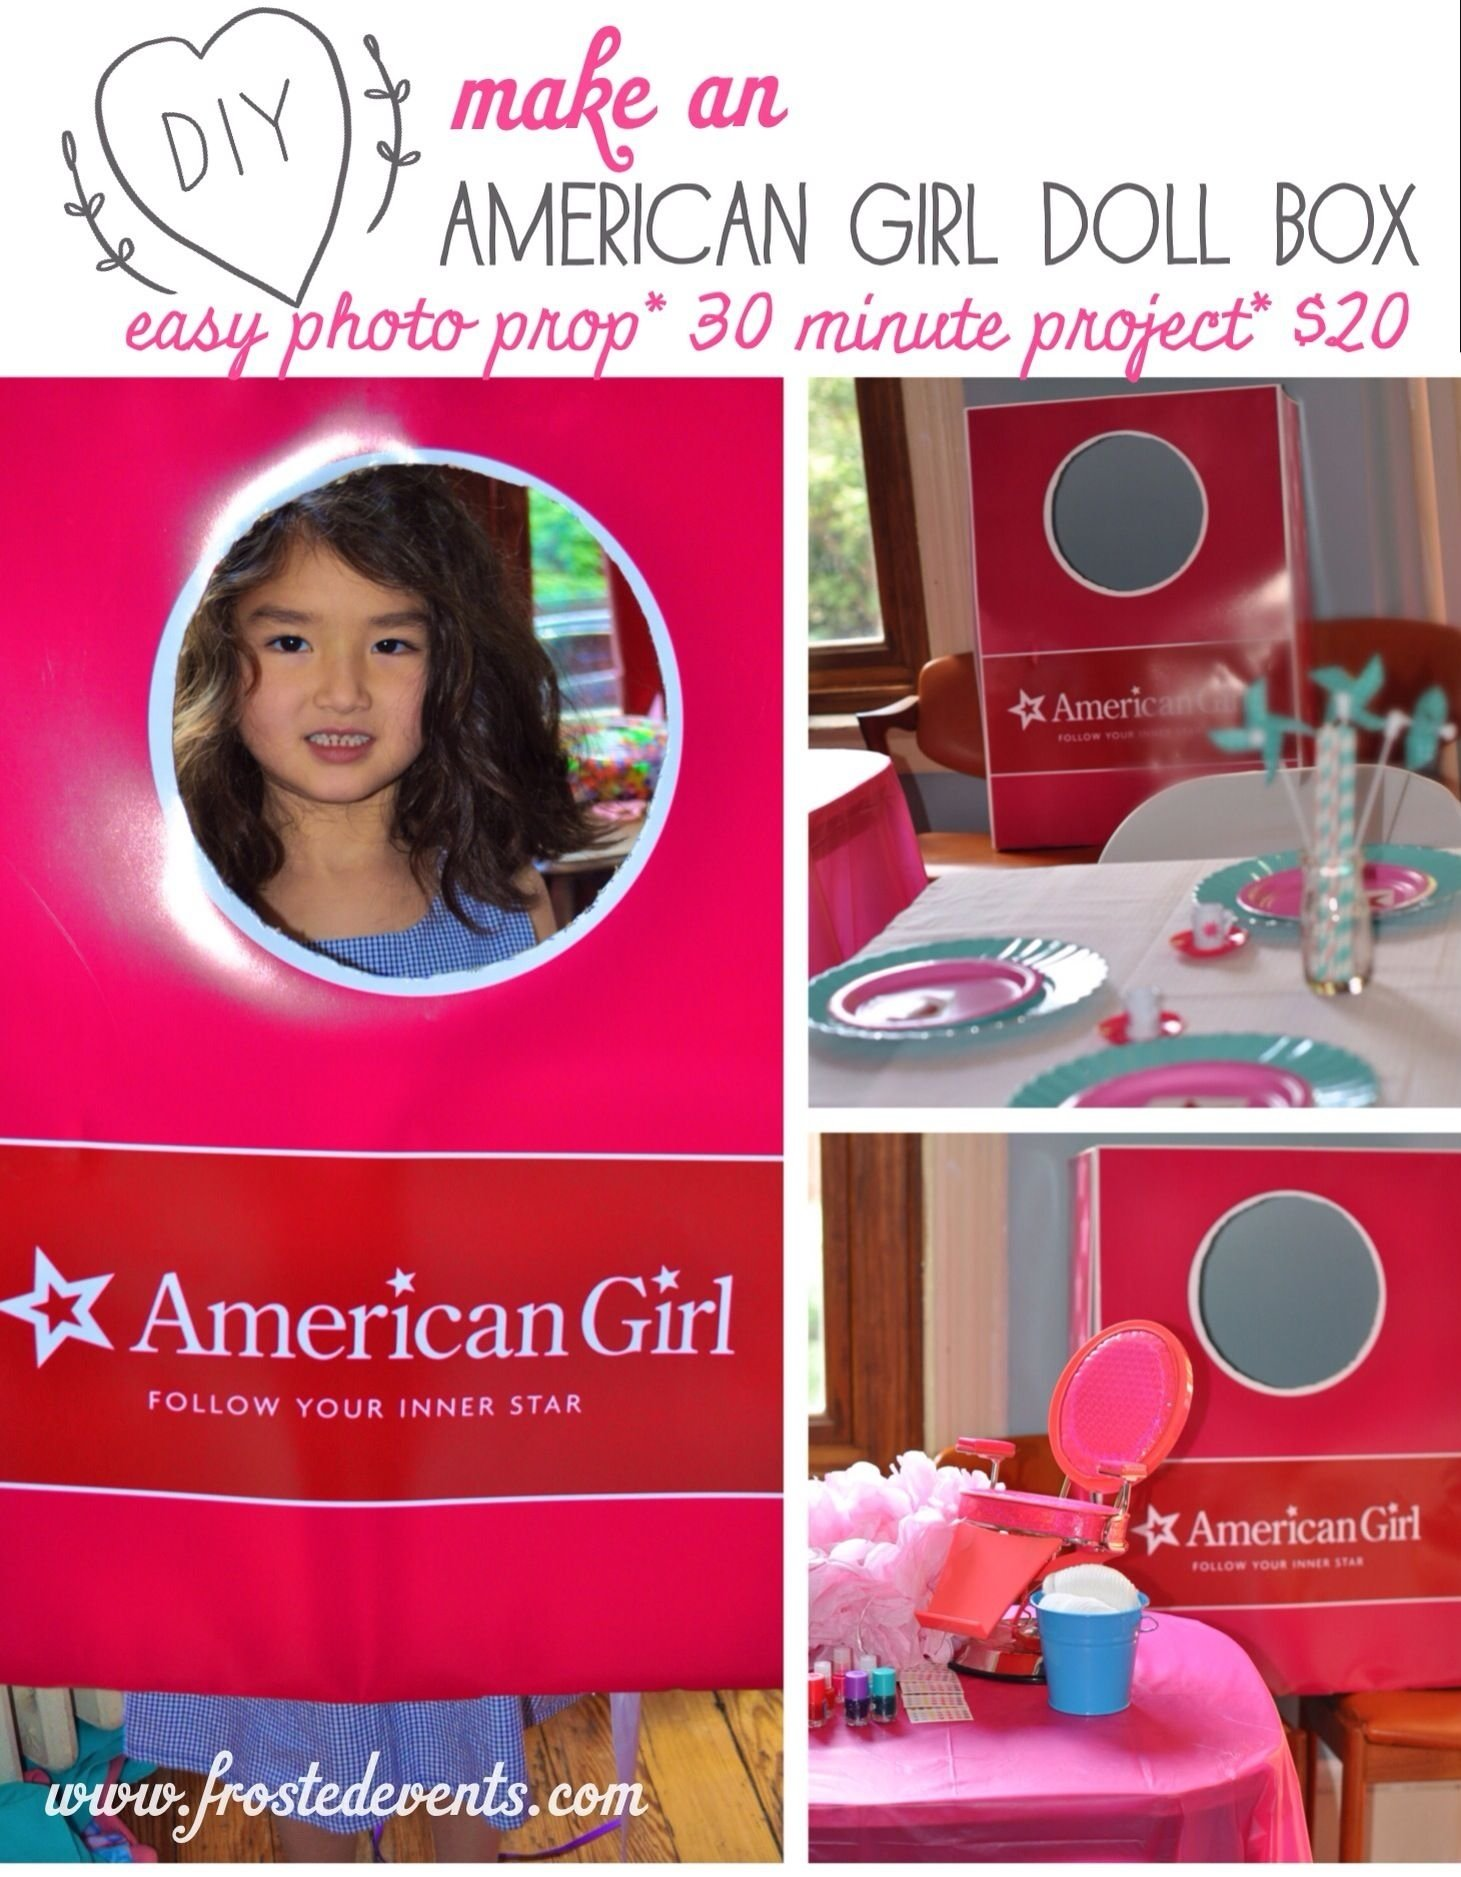 diy- how to make an american girl doll box photo prop | cake craft